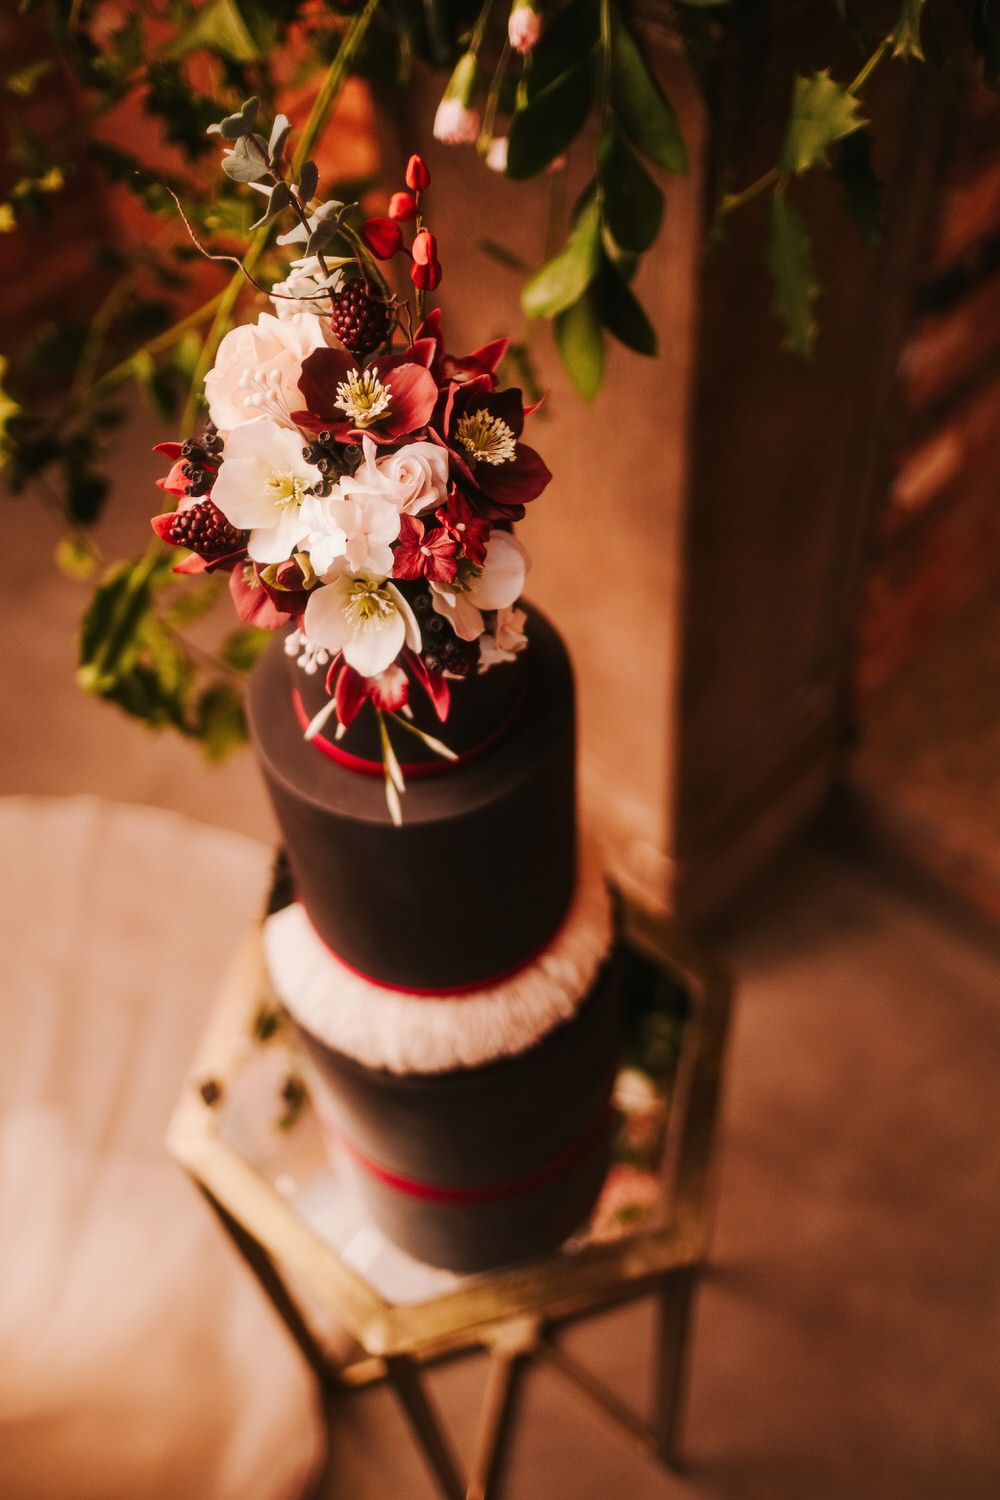 Cake Black Red Blush Floral Tall Flowers Romantic Wedding Ideas Neon Lighting Kate McCarthy Photography